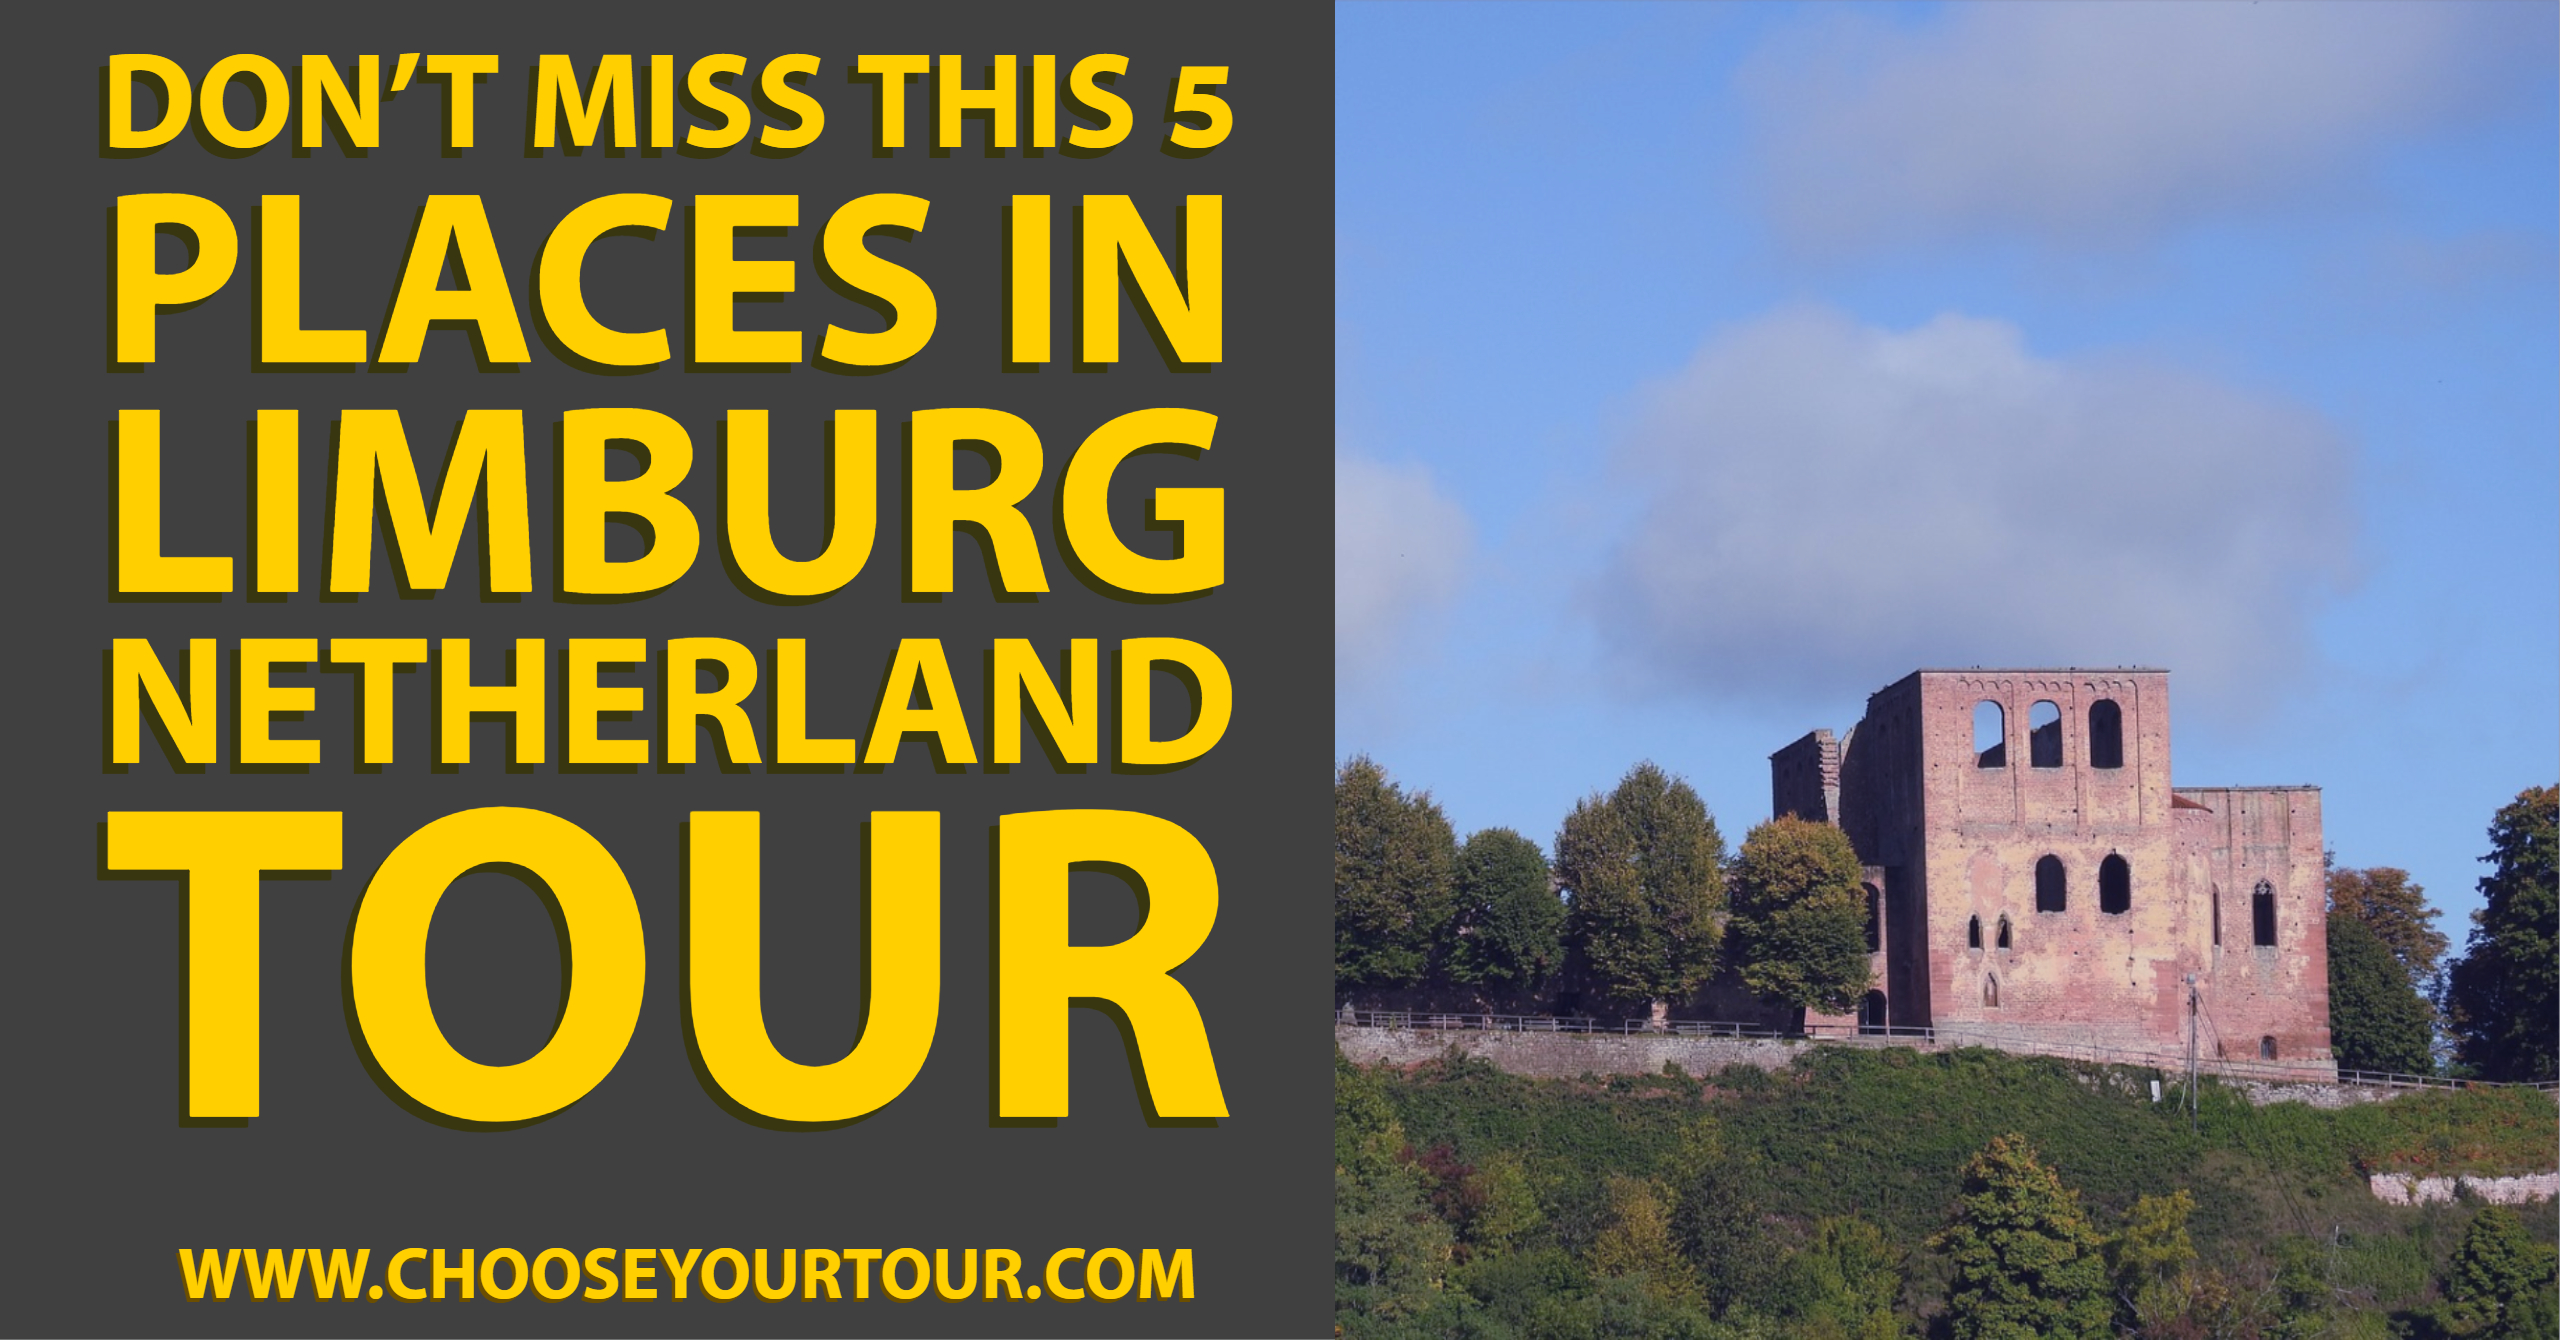 Don't Miss this 5 Places in Limburg Netherland Tour